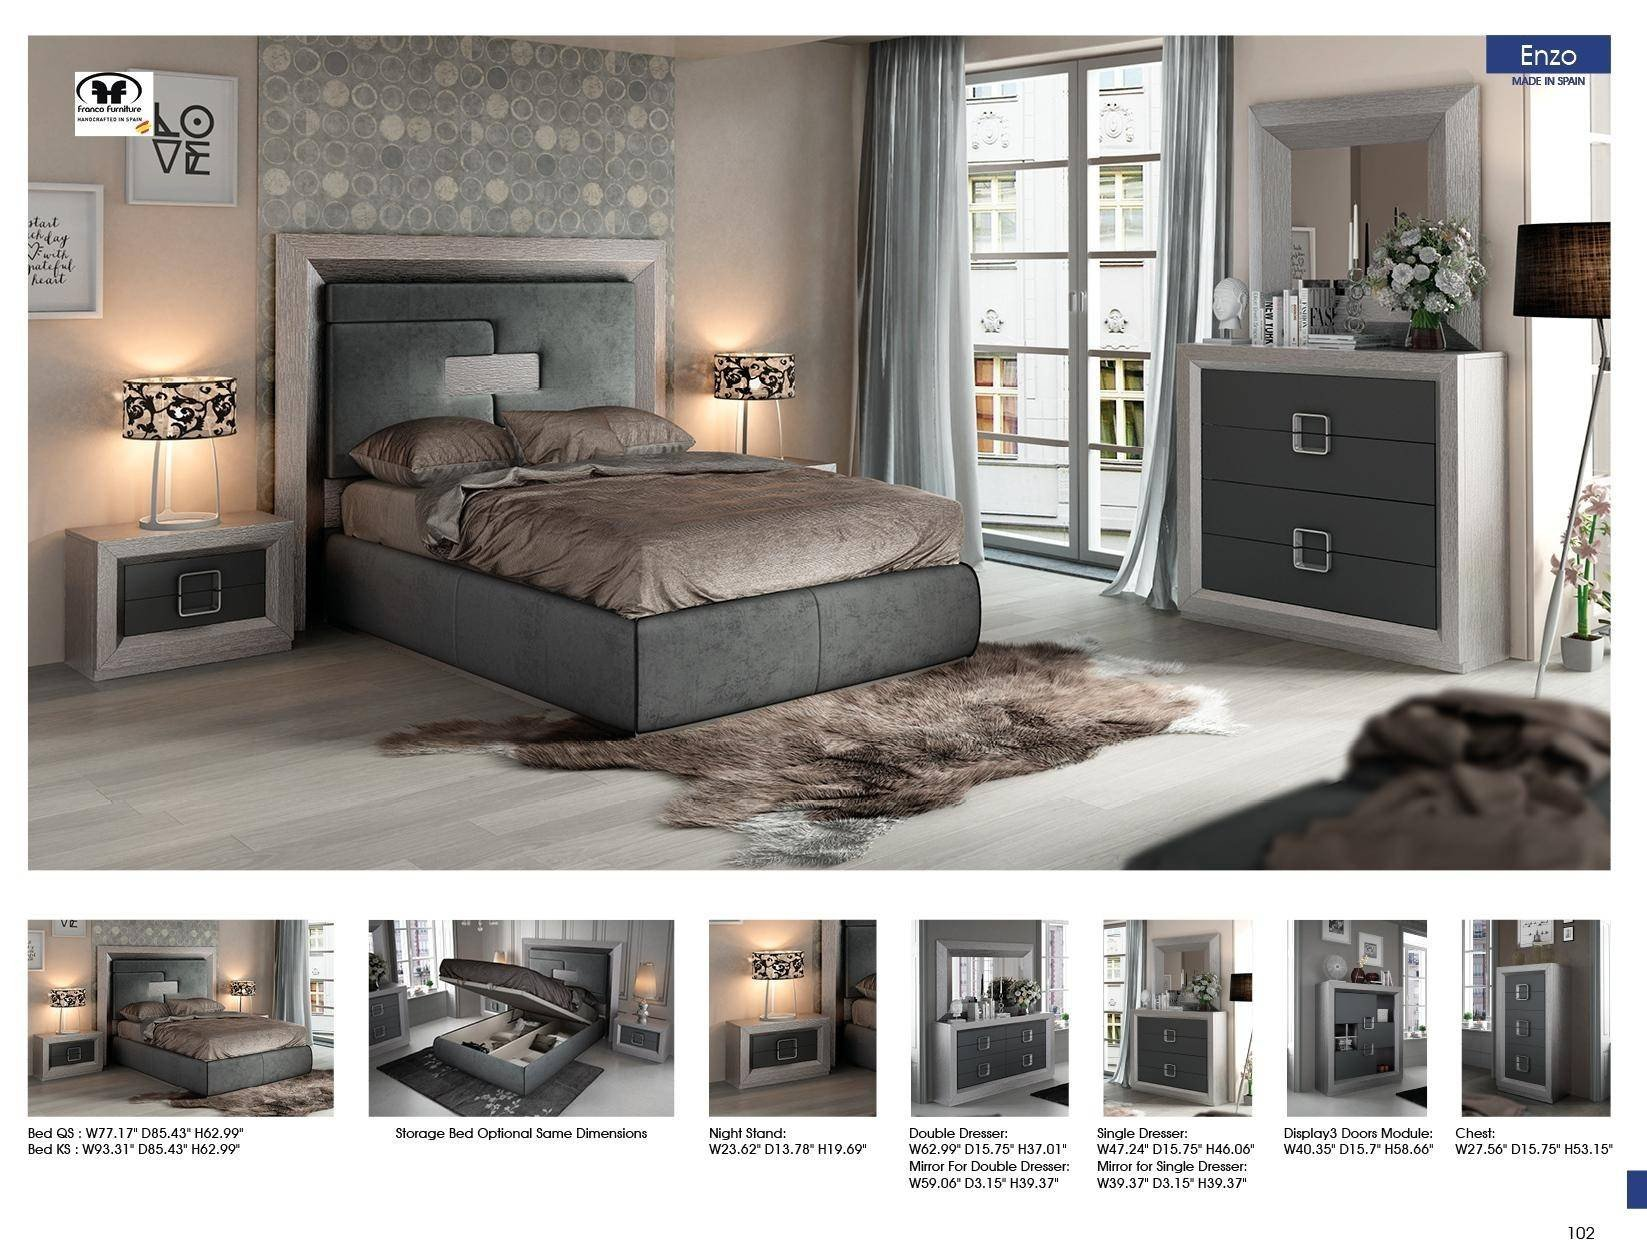 Platform Bedroom Set Queen Luxury Esf Enzo King Platform Bedroom Set 5 Pcs In Gray Fabric